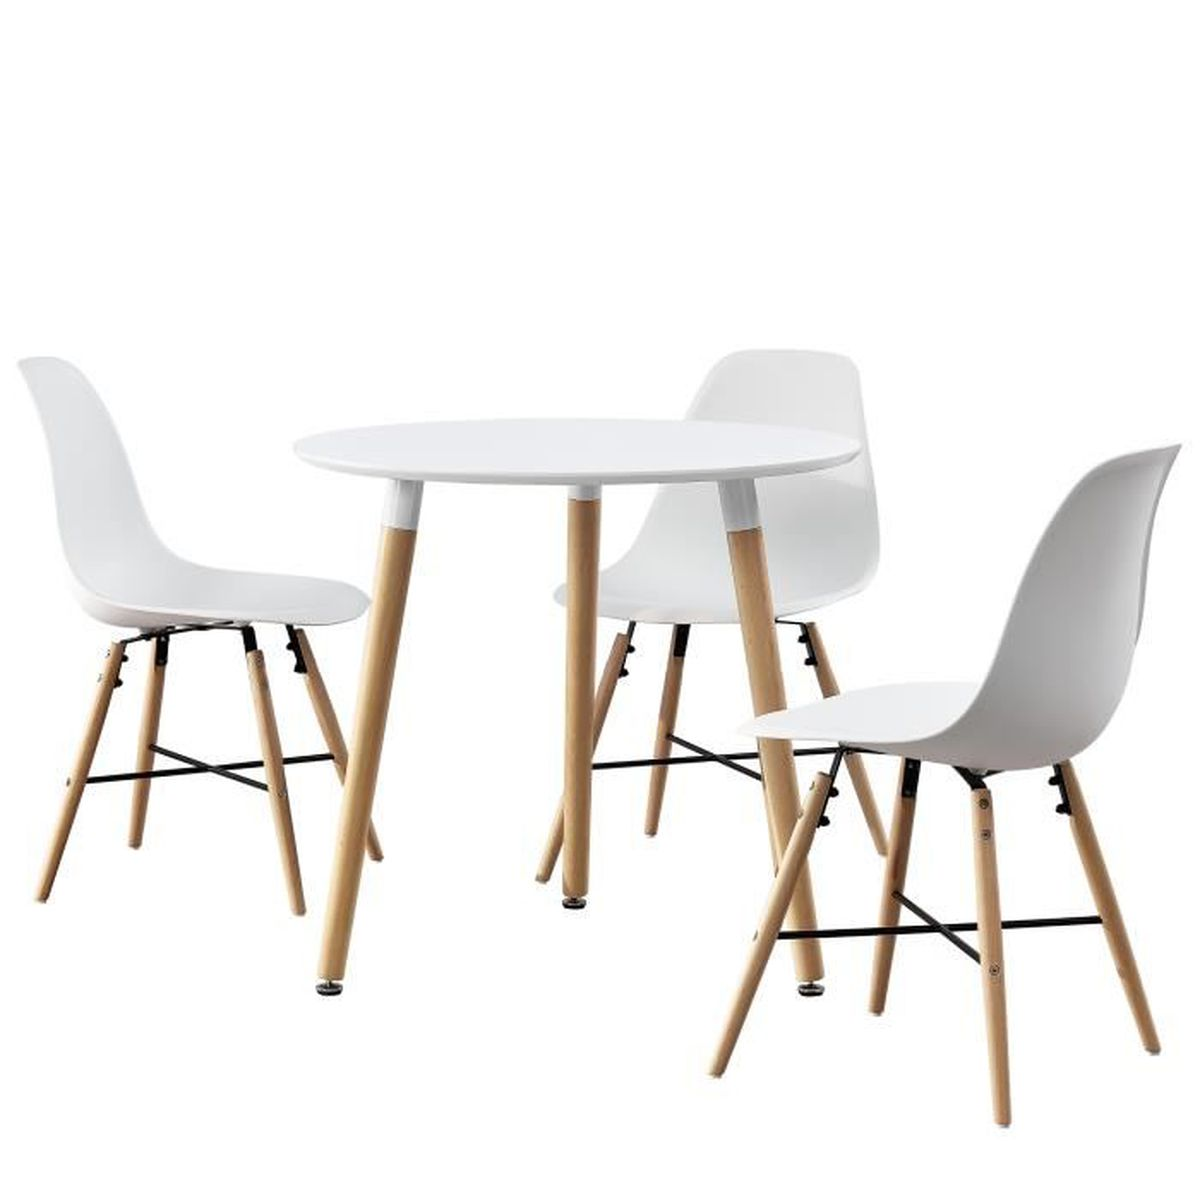 table manger ronde blanc 80cm avec 3 chaises blanc salle manger cuisine achat. Black Bedroom Furniture Sets. Home Design Ideas